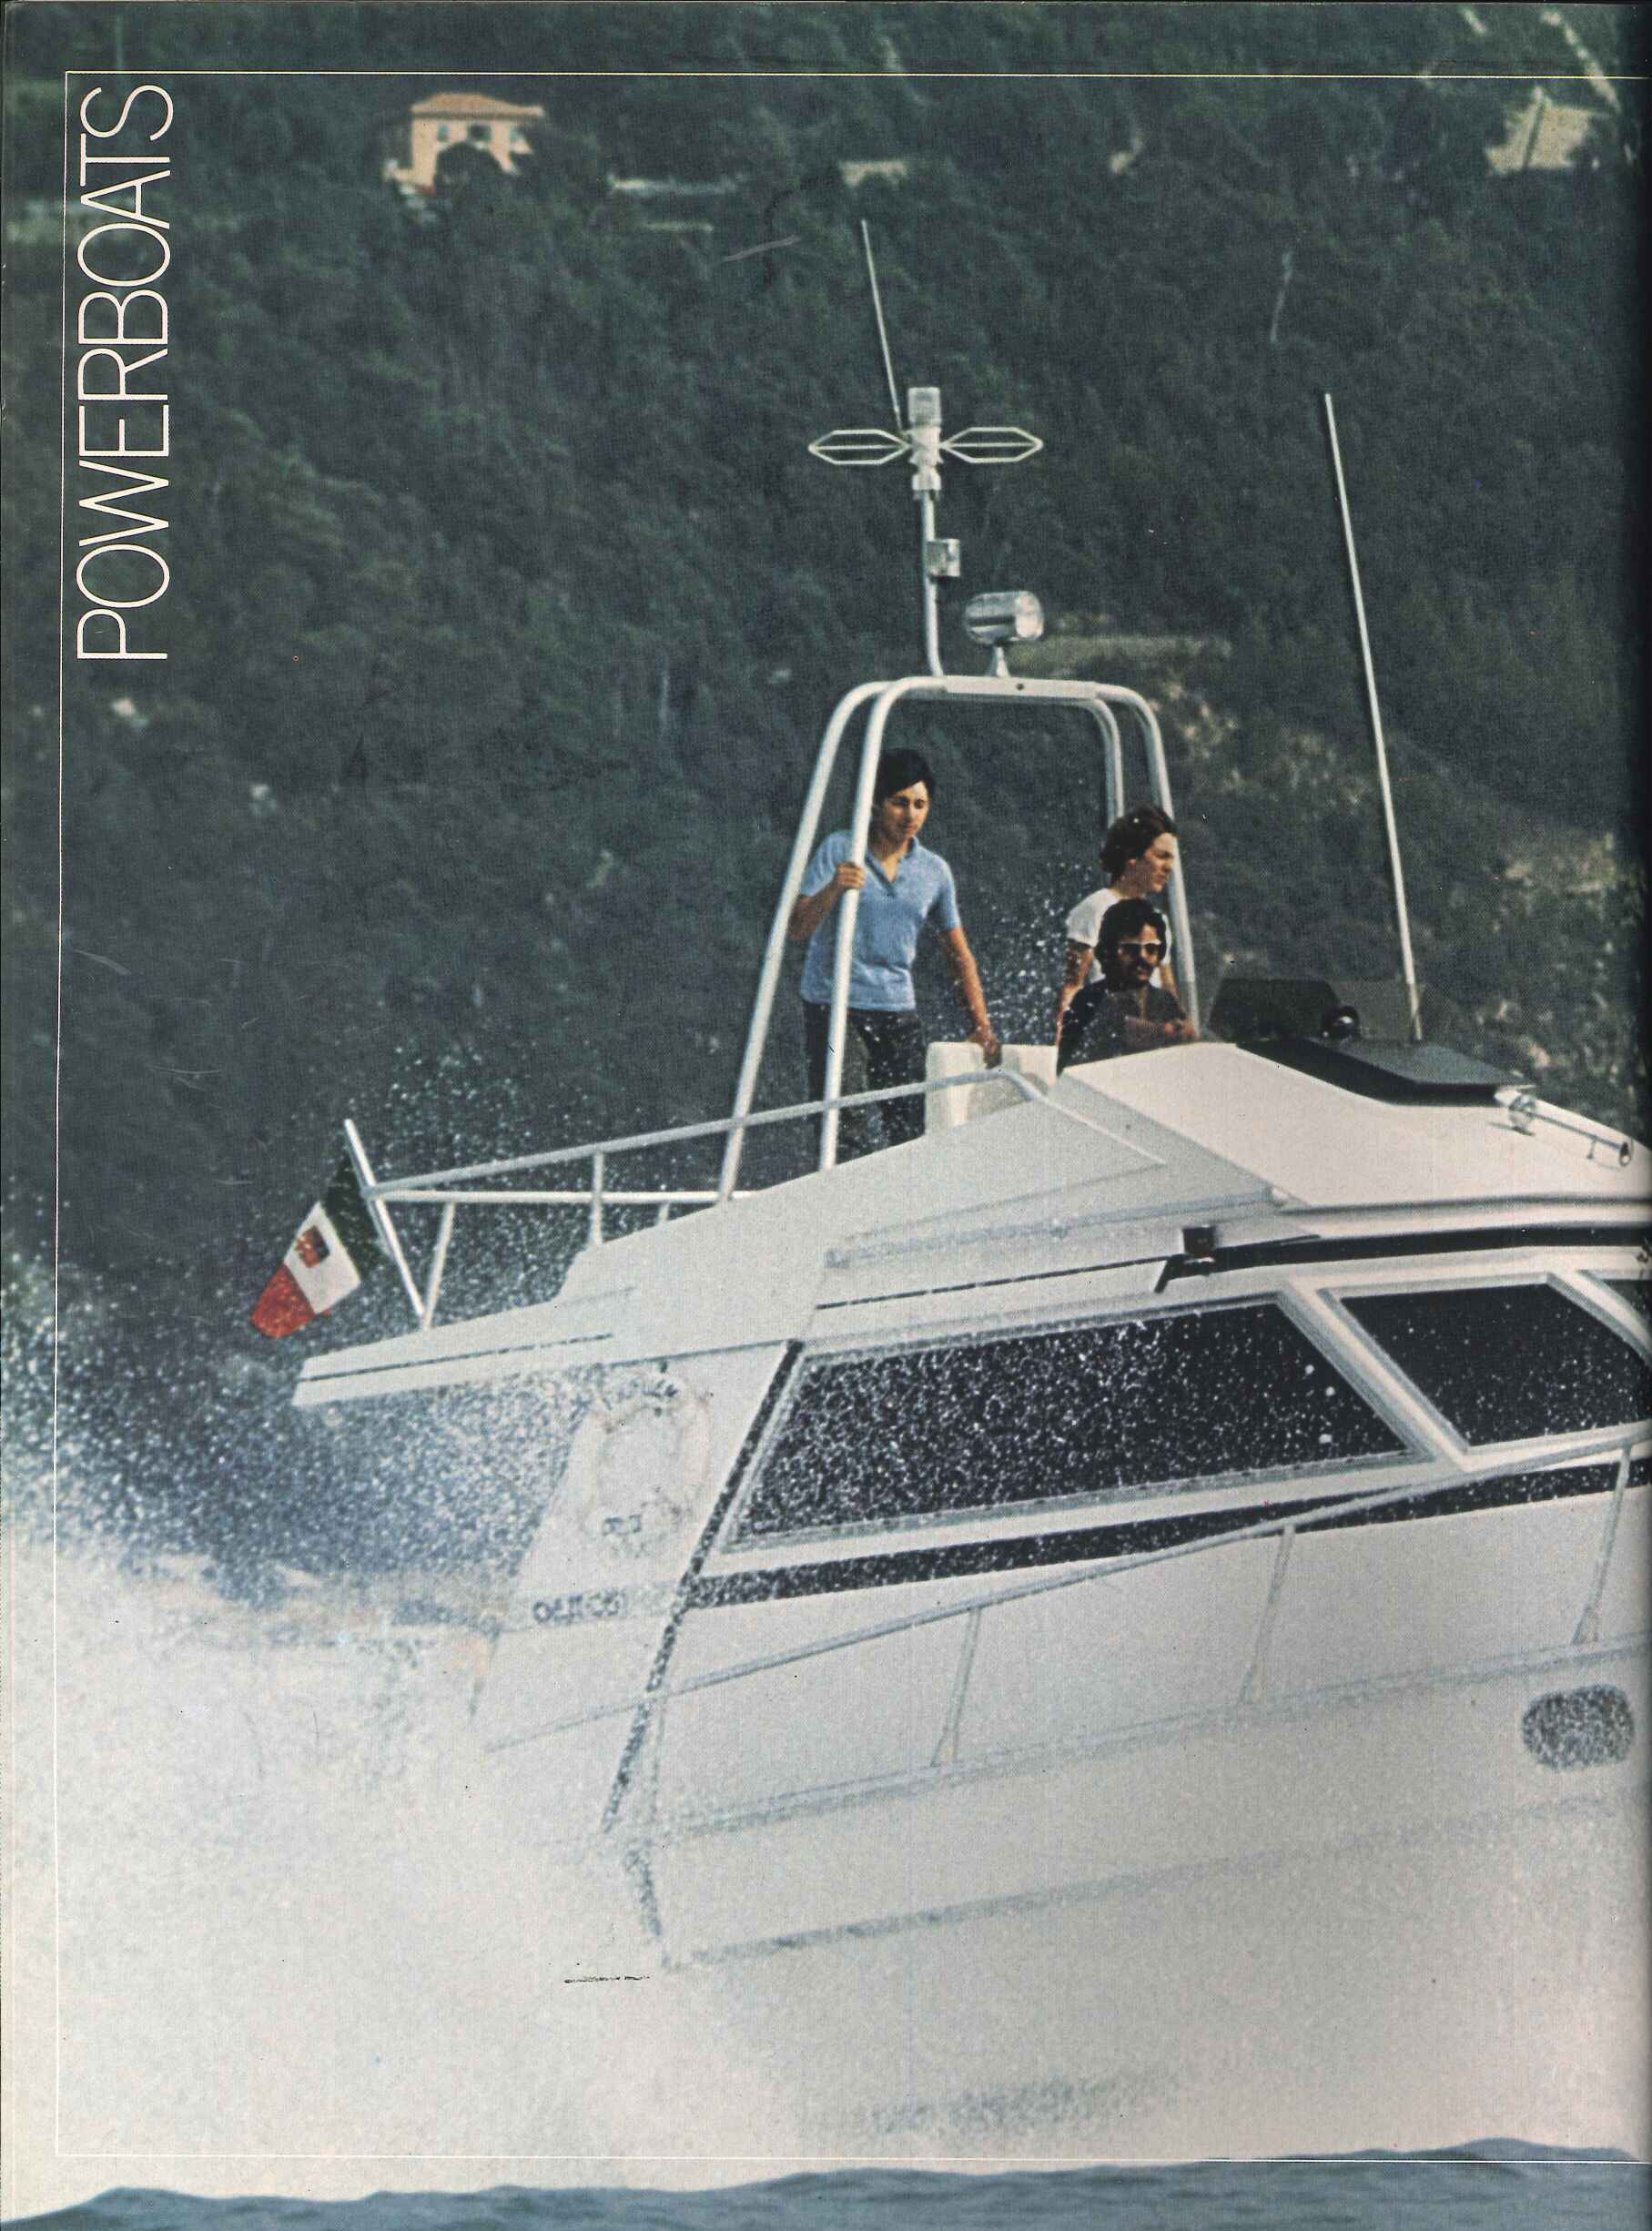 1977 02 PRESS RIO11.50 UOMO MARE N°19(01).jpg